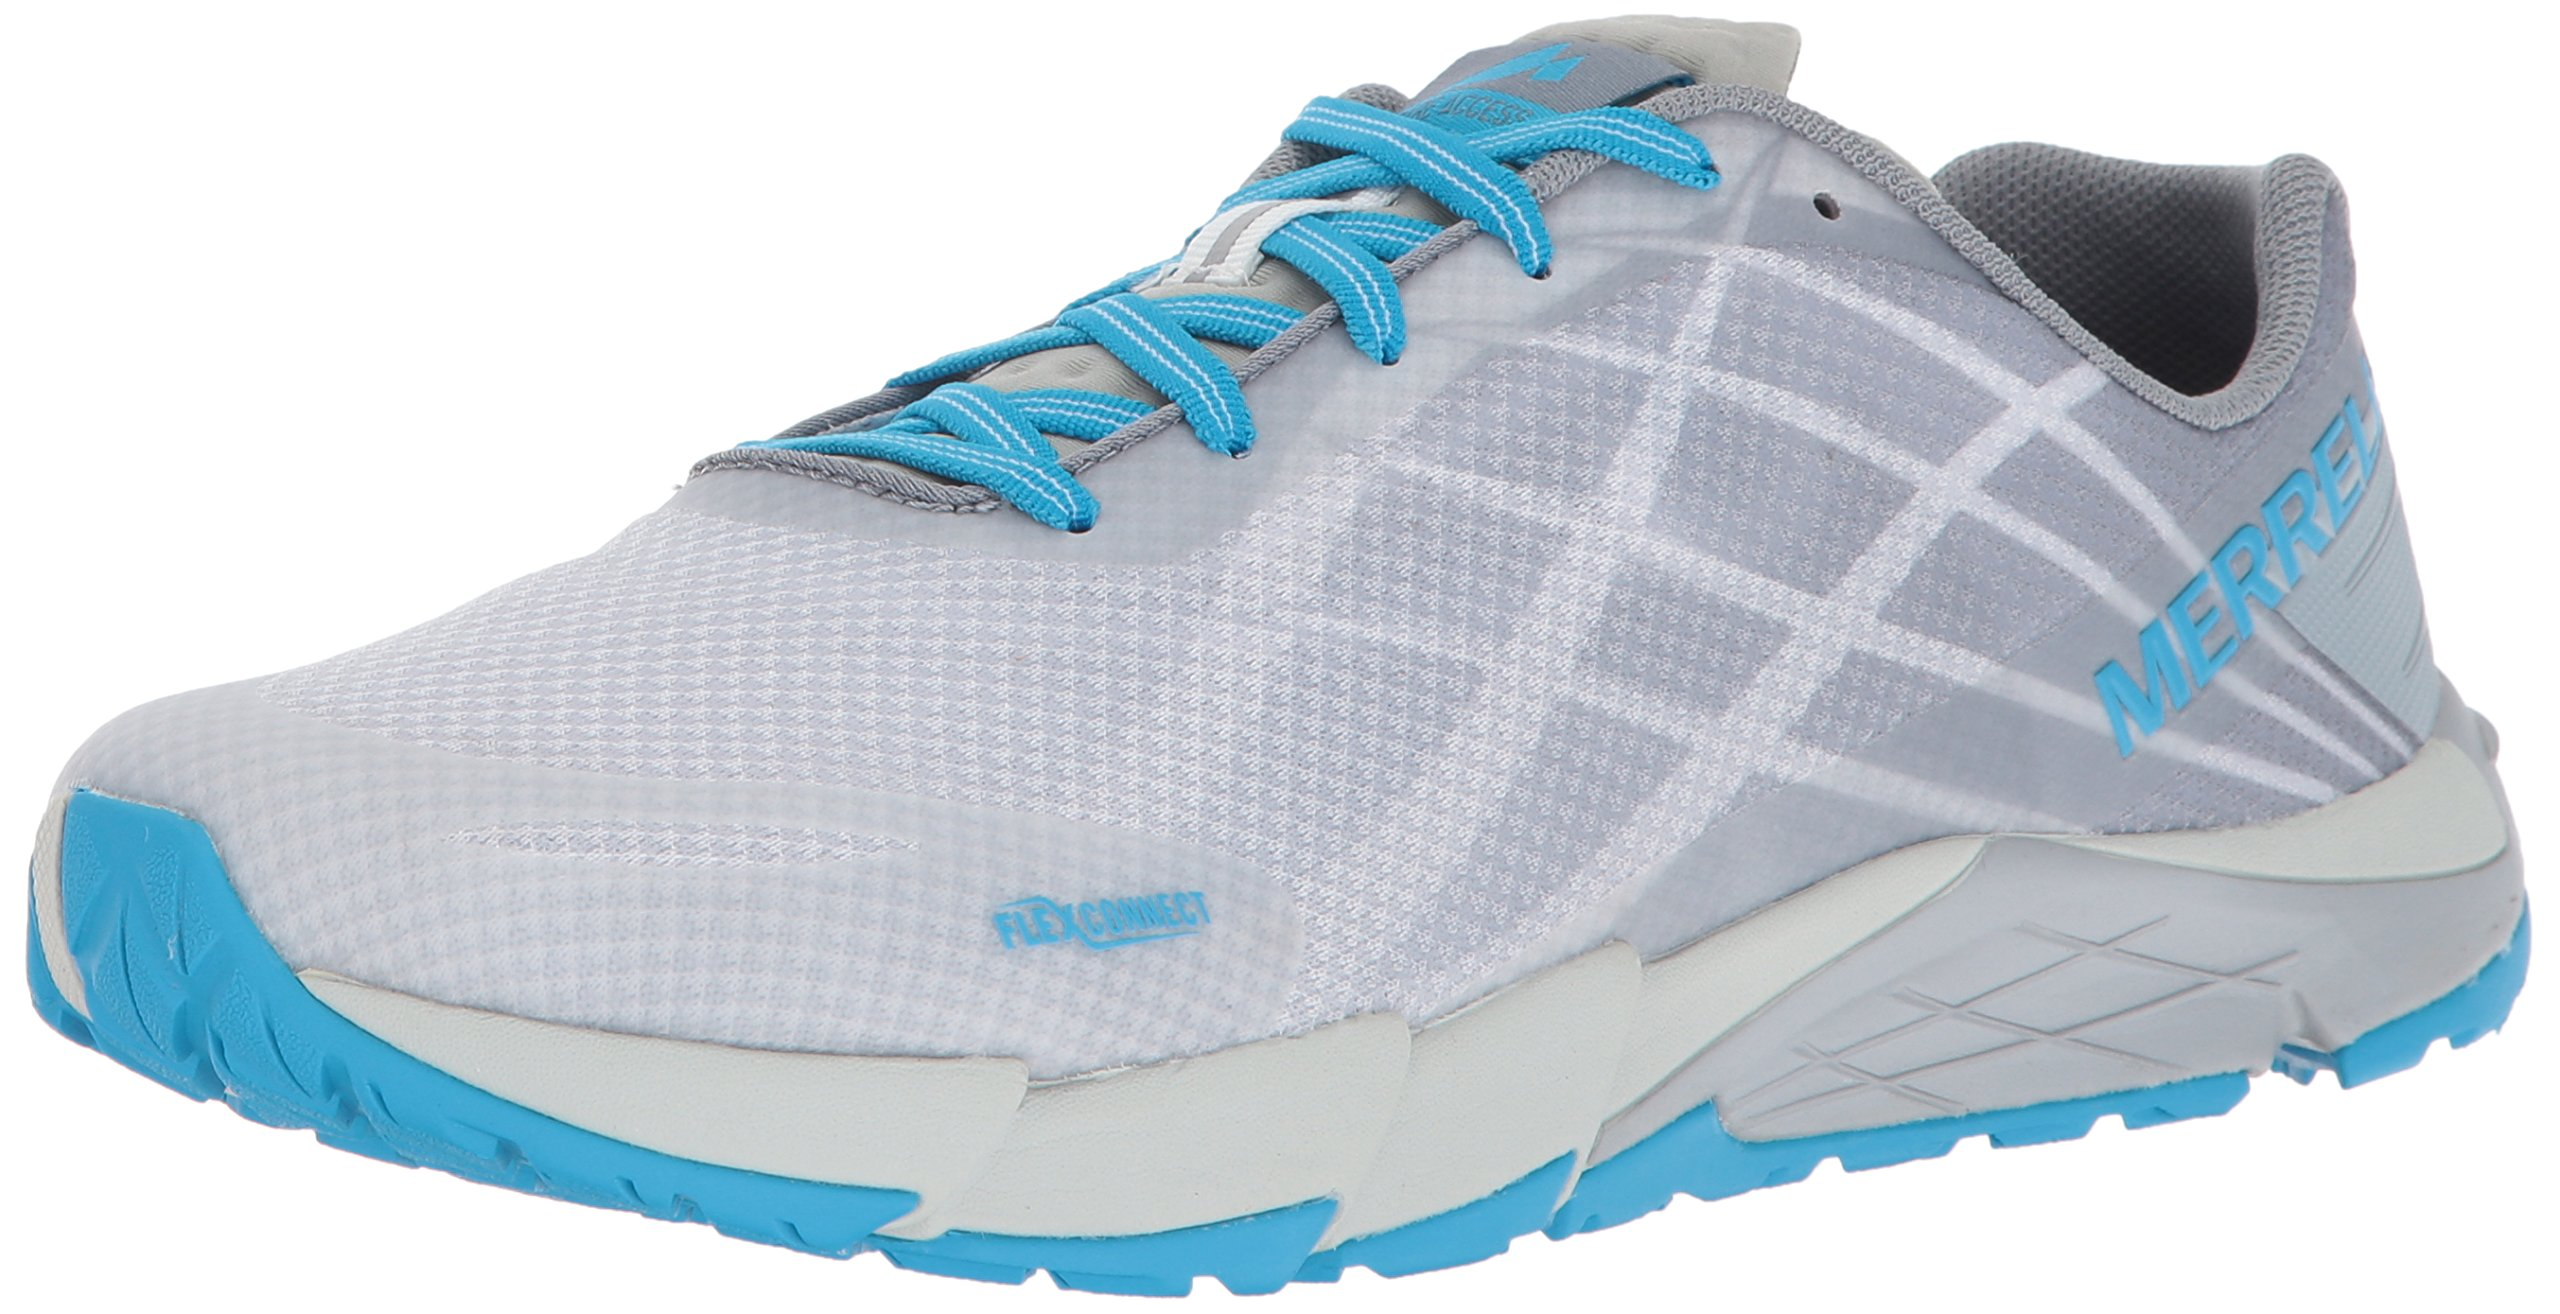 Merrell Women's Bare Access Flex Trail Runner, Ice, 8 M US